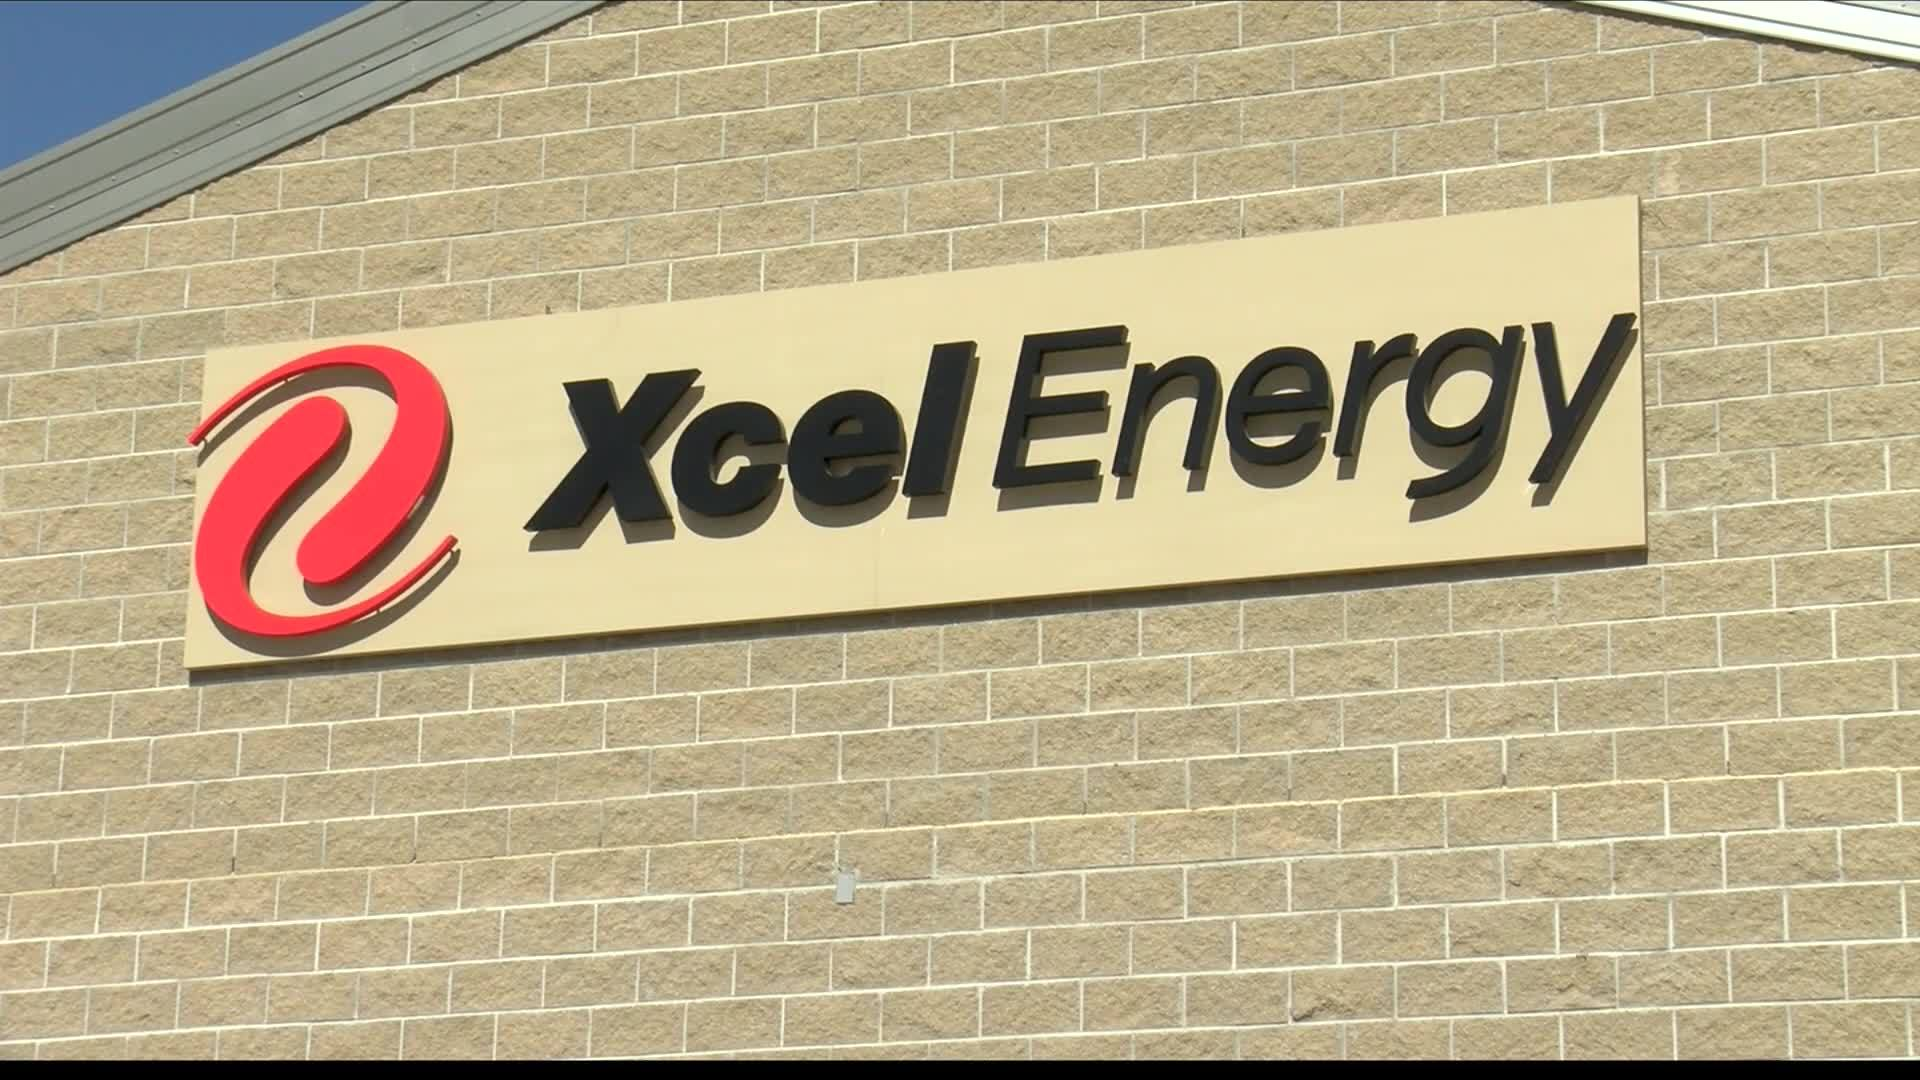 Xcel_Energy_Moves_Into_New_Canyon_Servic_6_20190213011445